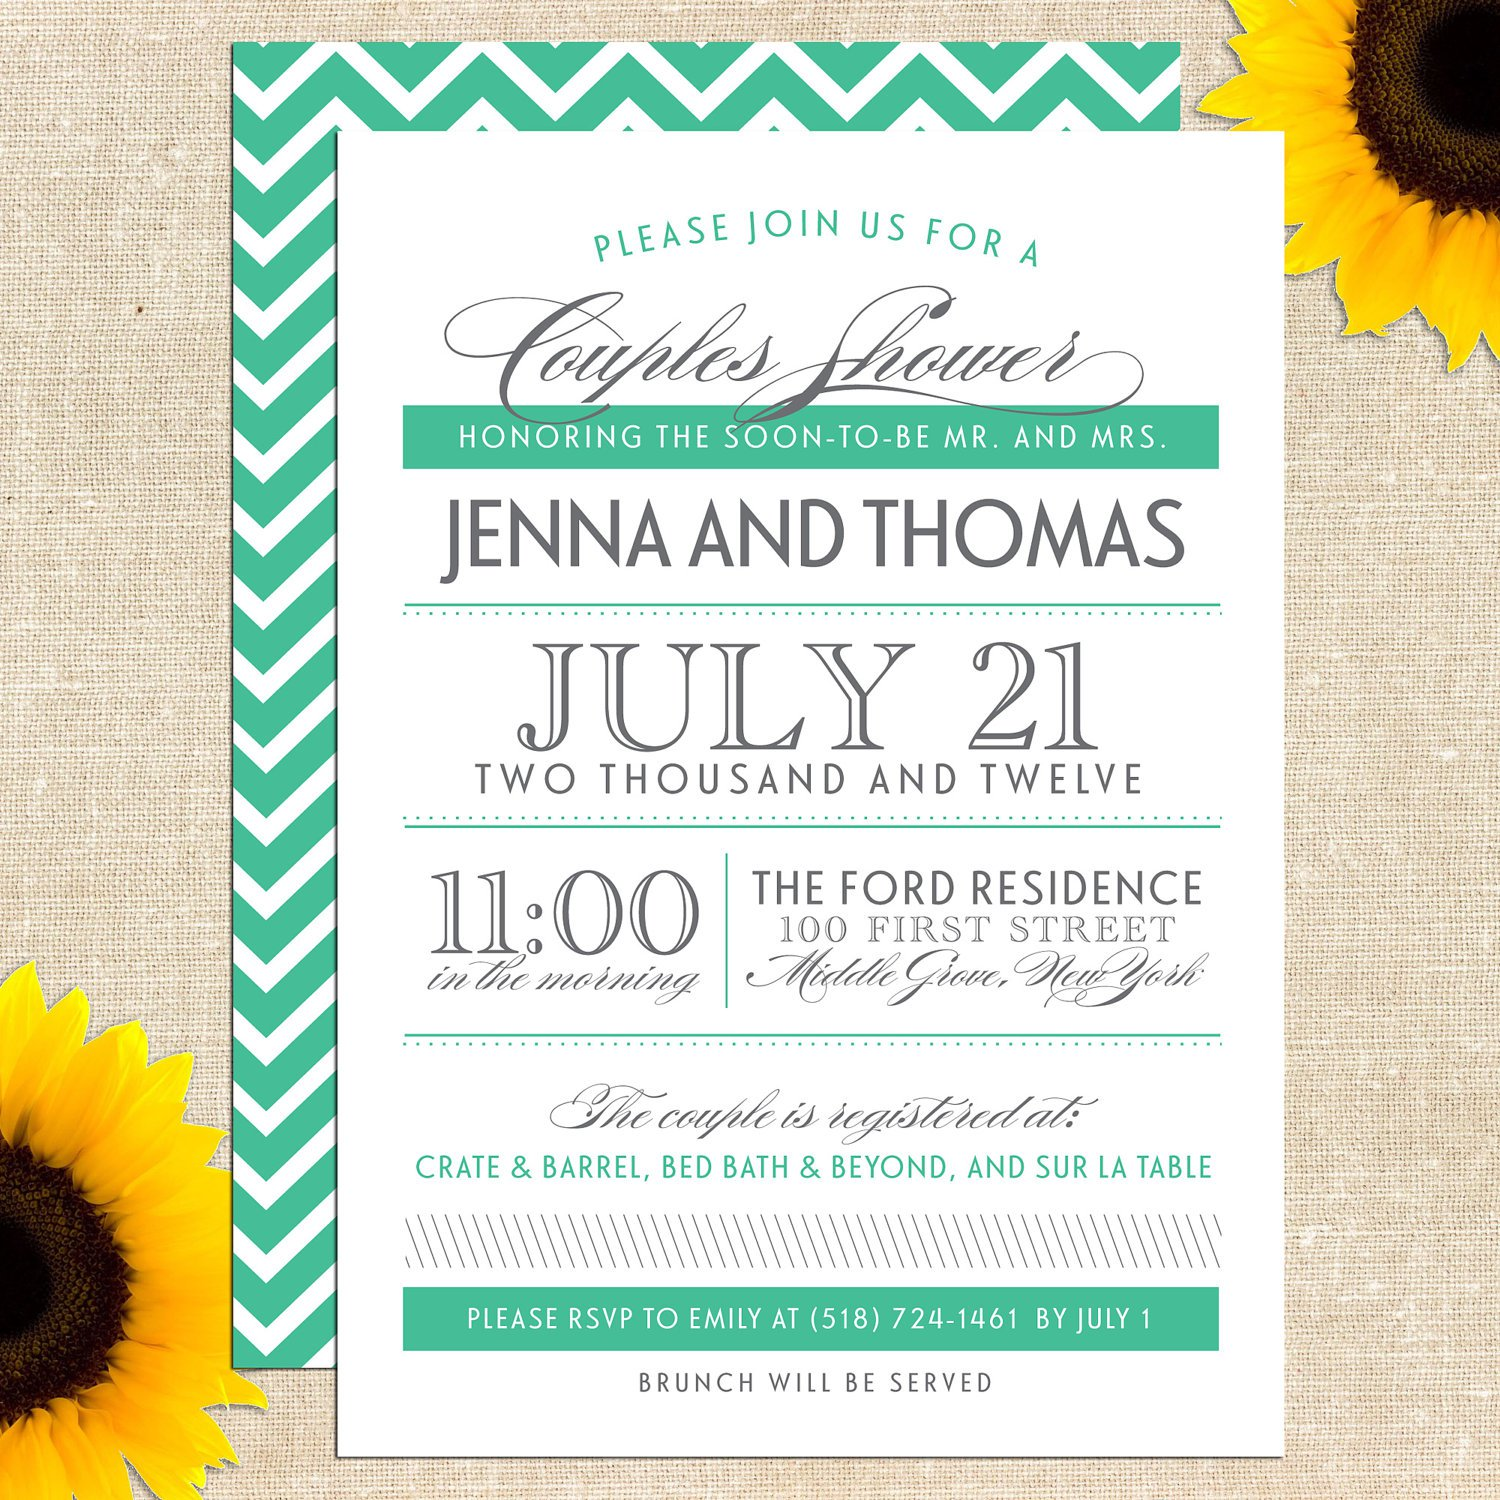 For Couples Shower Invitations – Couples Shower Wedding Invitations